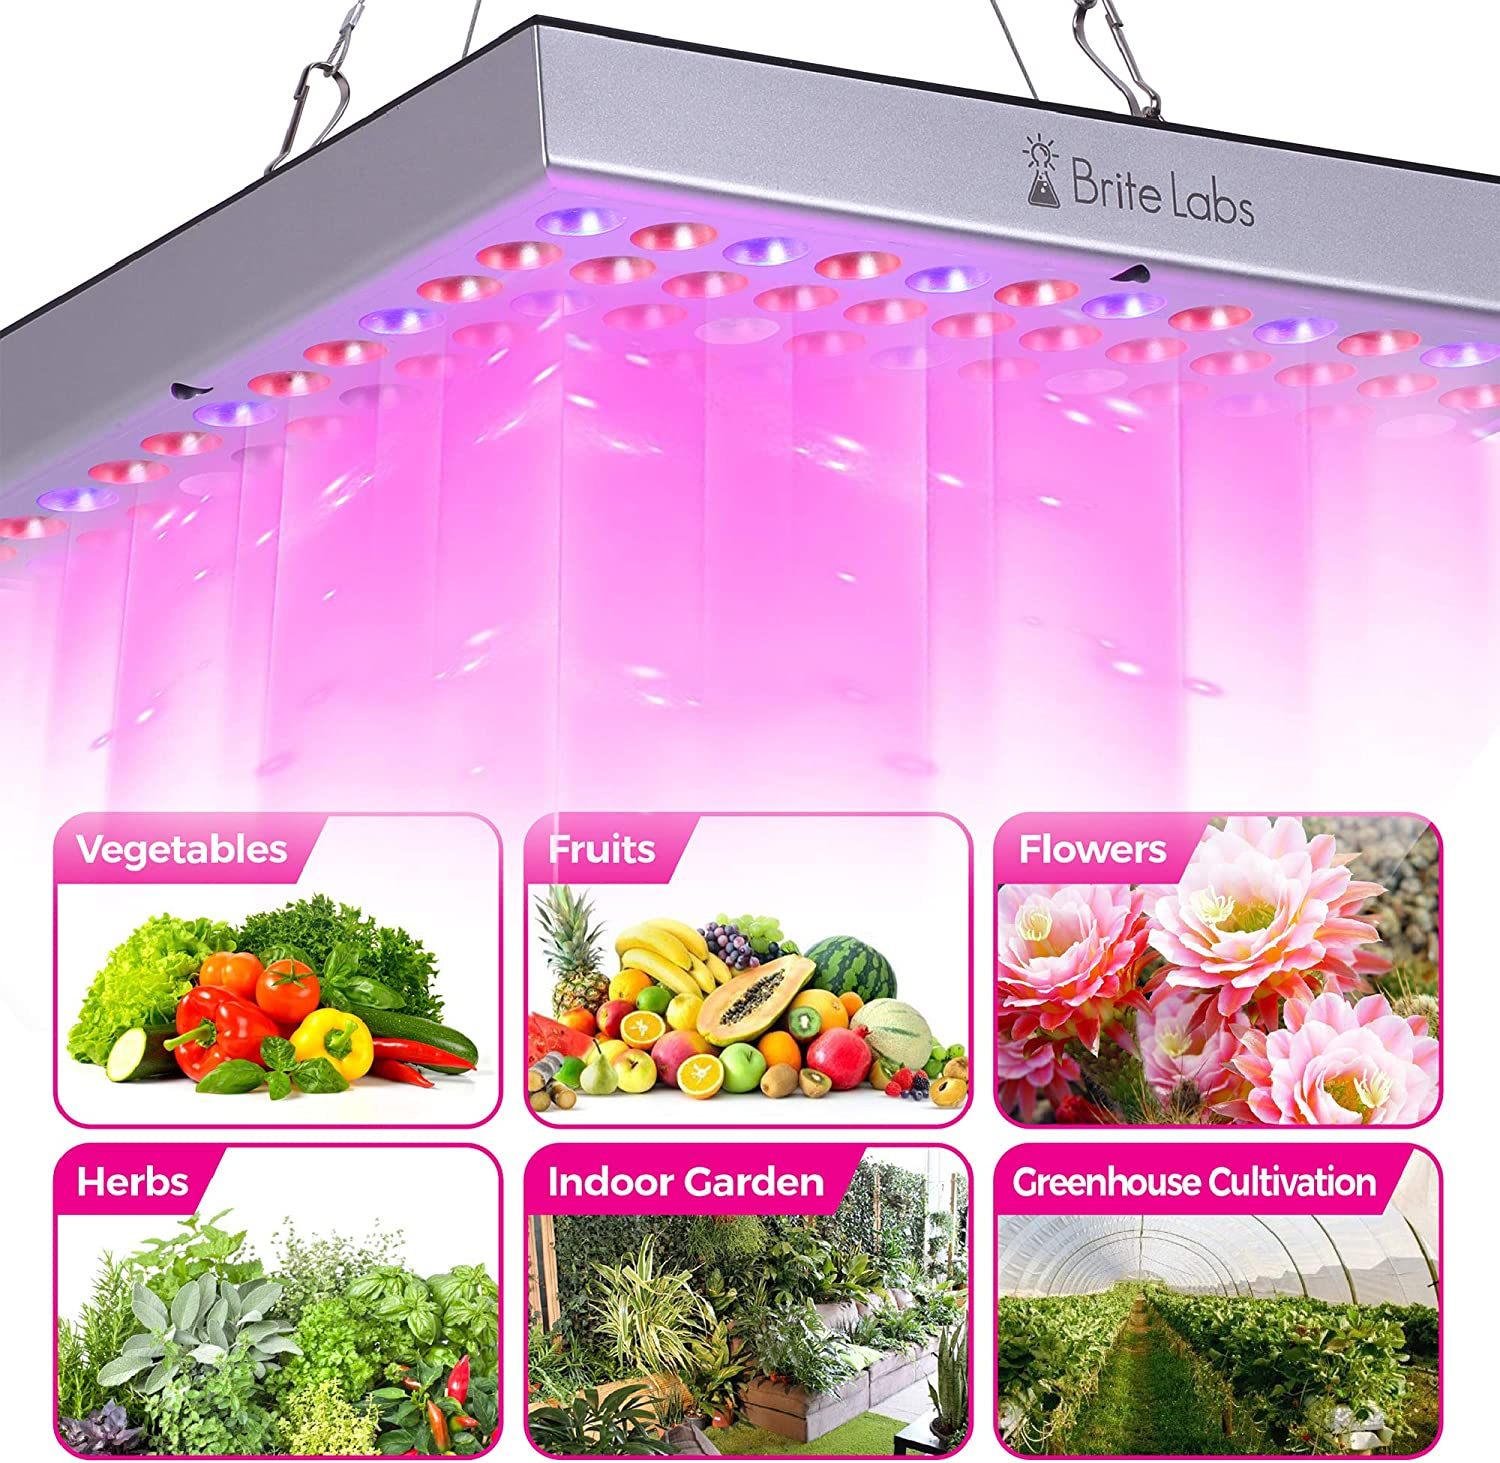 45W Plant Growing Lamps with 144 Full Spectrum LEDs Bulb Hanging Growth Light Fixtures Propagator for Seedling Succulents Flower /& Hydroponic Greenhouse Brite Labs LED Grow Lights for Indoor Plants